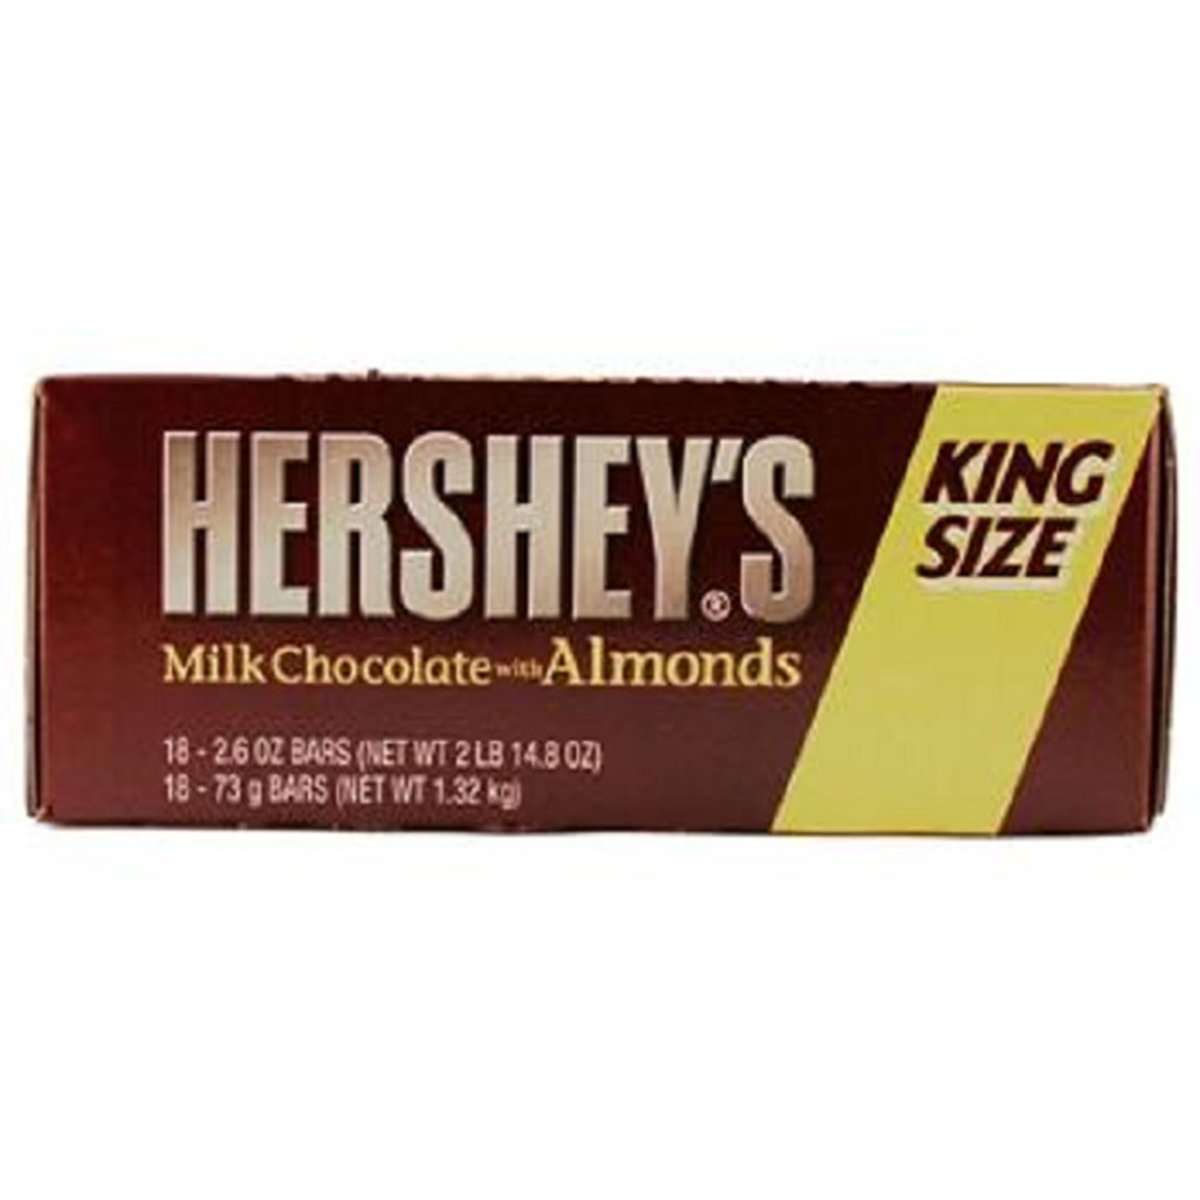 Product Of Hersheys, King Size Milk Chocolate With Almonds, Count 18 (2.6 oz) - Chocolate Candy / Grab Varieties & Flavors